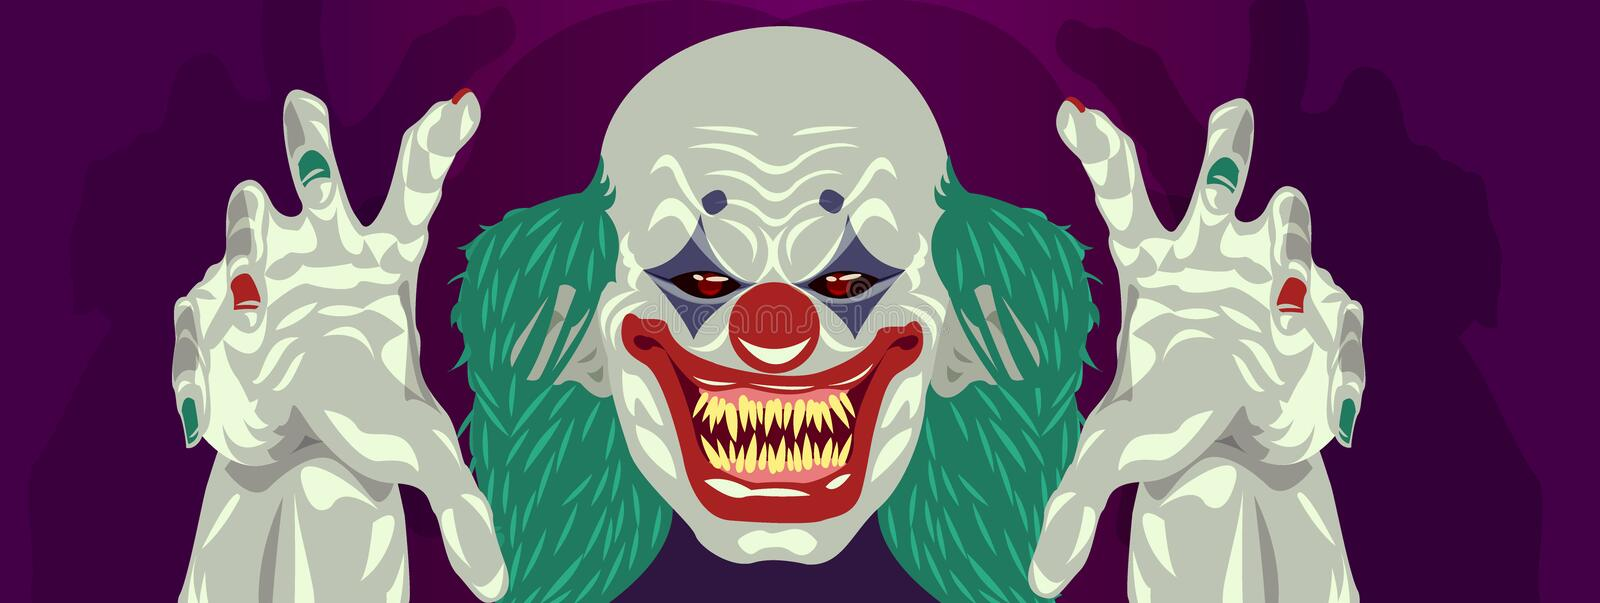 Clown Halloween costume clown flat design. Scary clown reaching out hands to grab you stock illustration